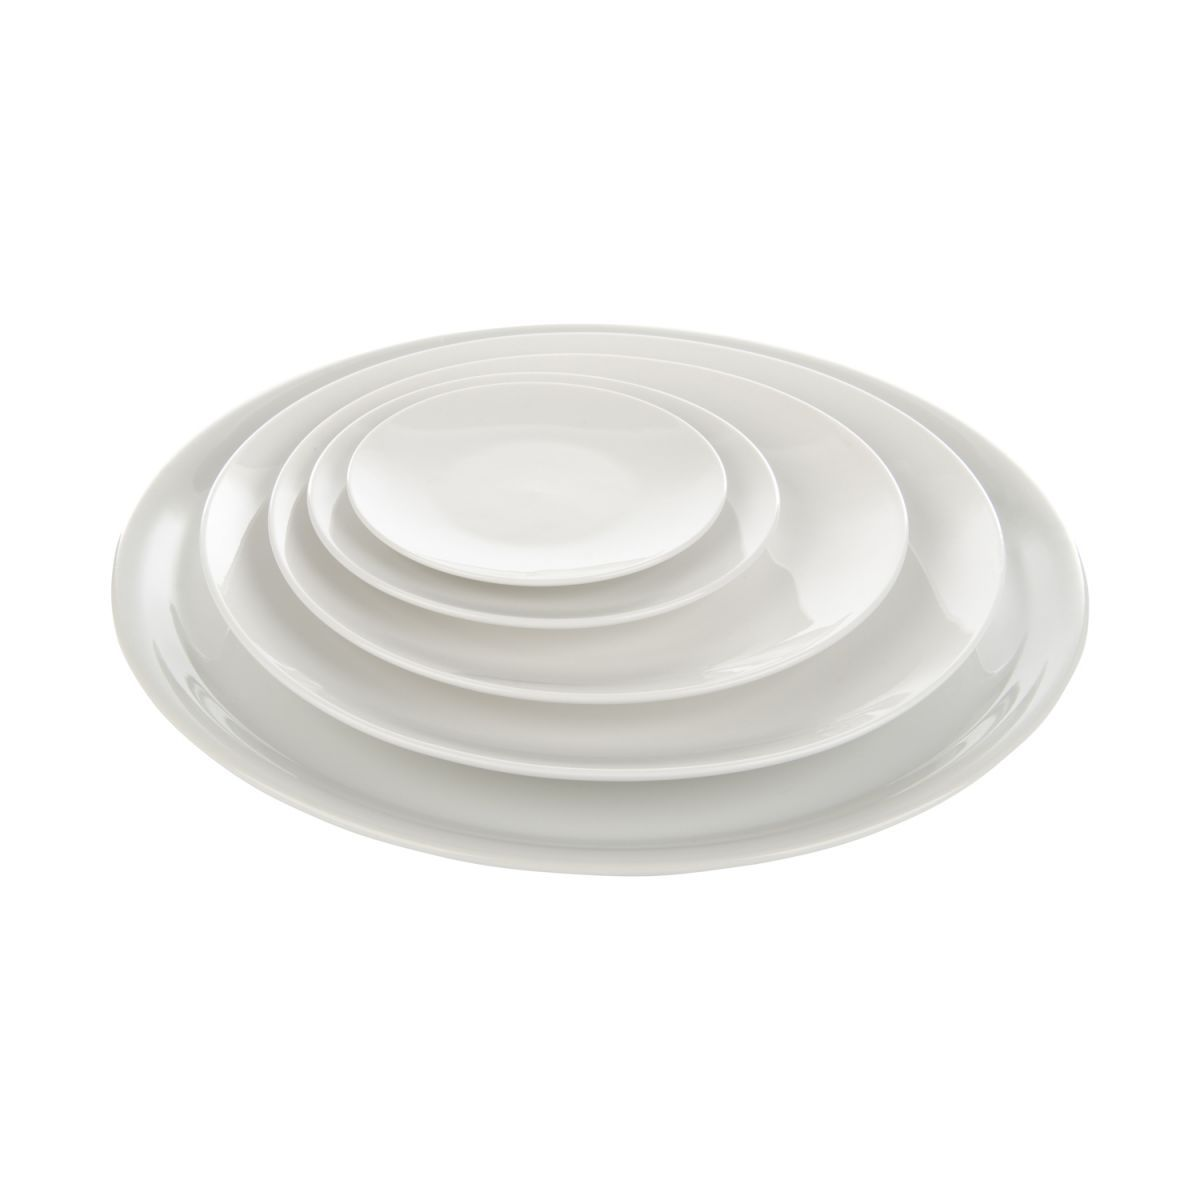 bord porselein rond wit 20cmbox 12